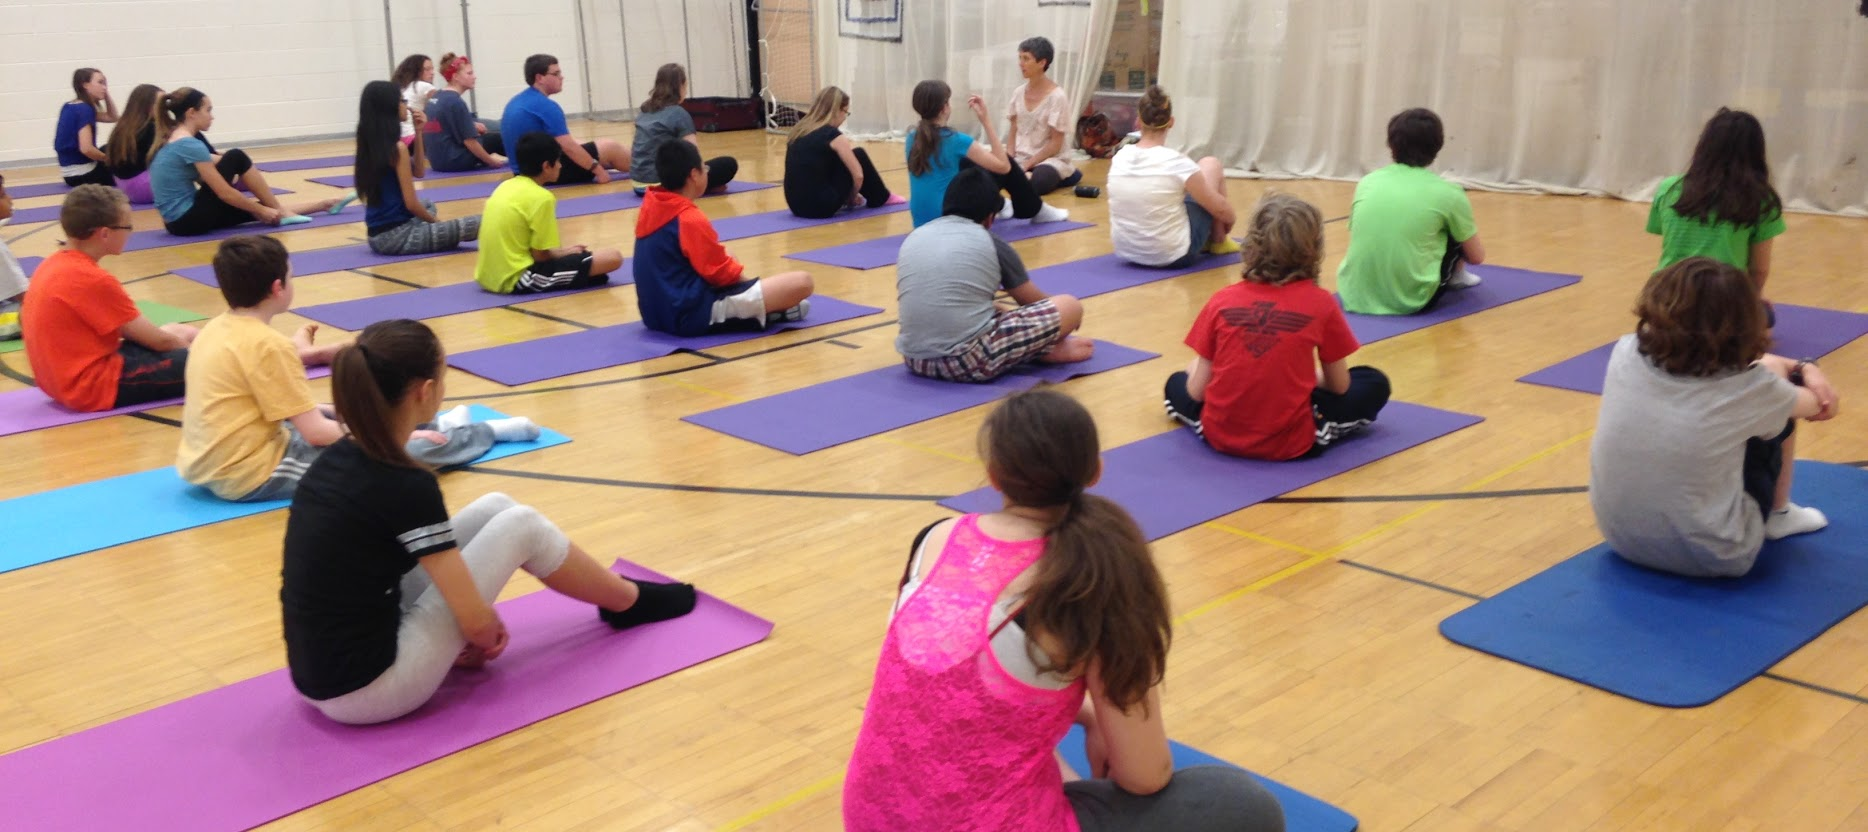 Modular Classroom Yoga : Belightful yoga services brings mindfulness to classrooms